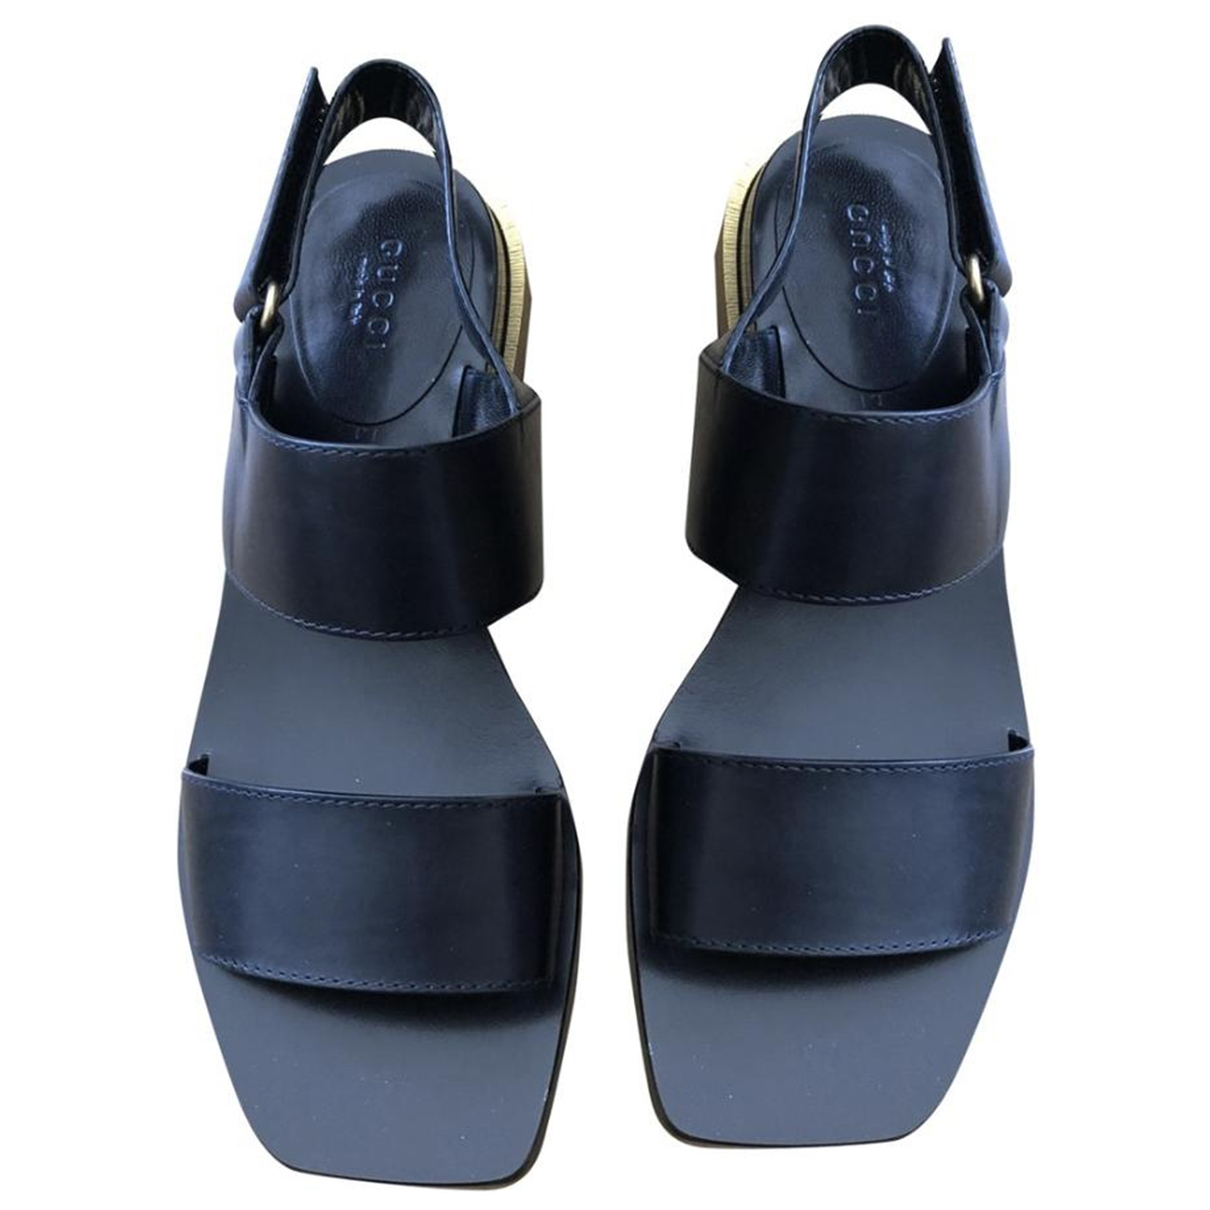 Gucci \N Black Leather Sandals for Women 37.5 IT